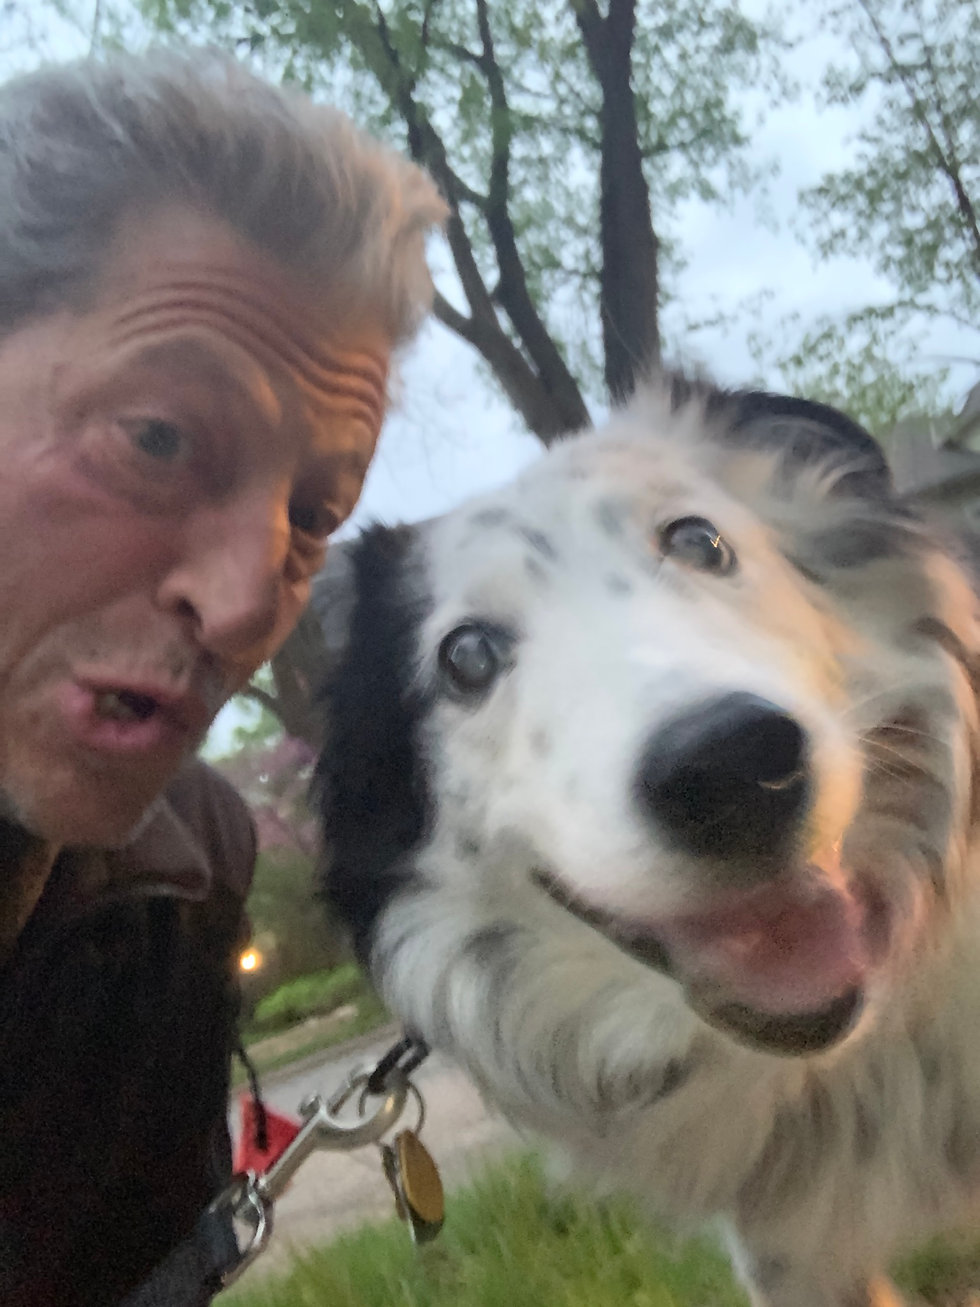 Face of man with grey hair and white dog face with black spots looking down at camera